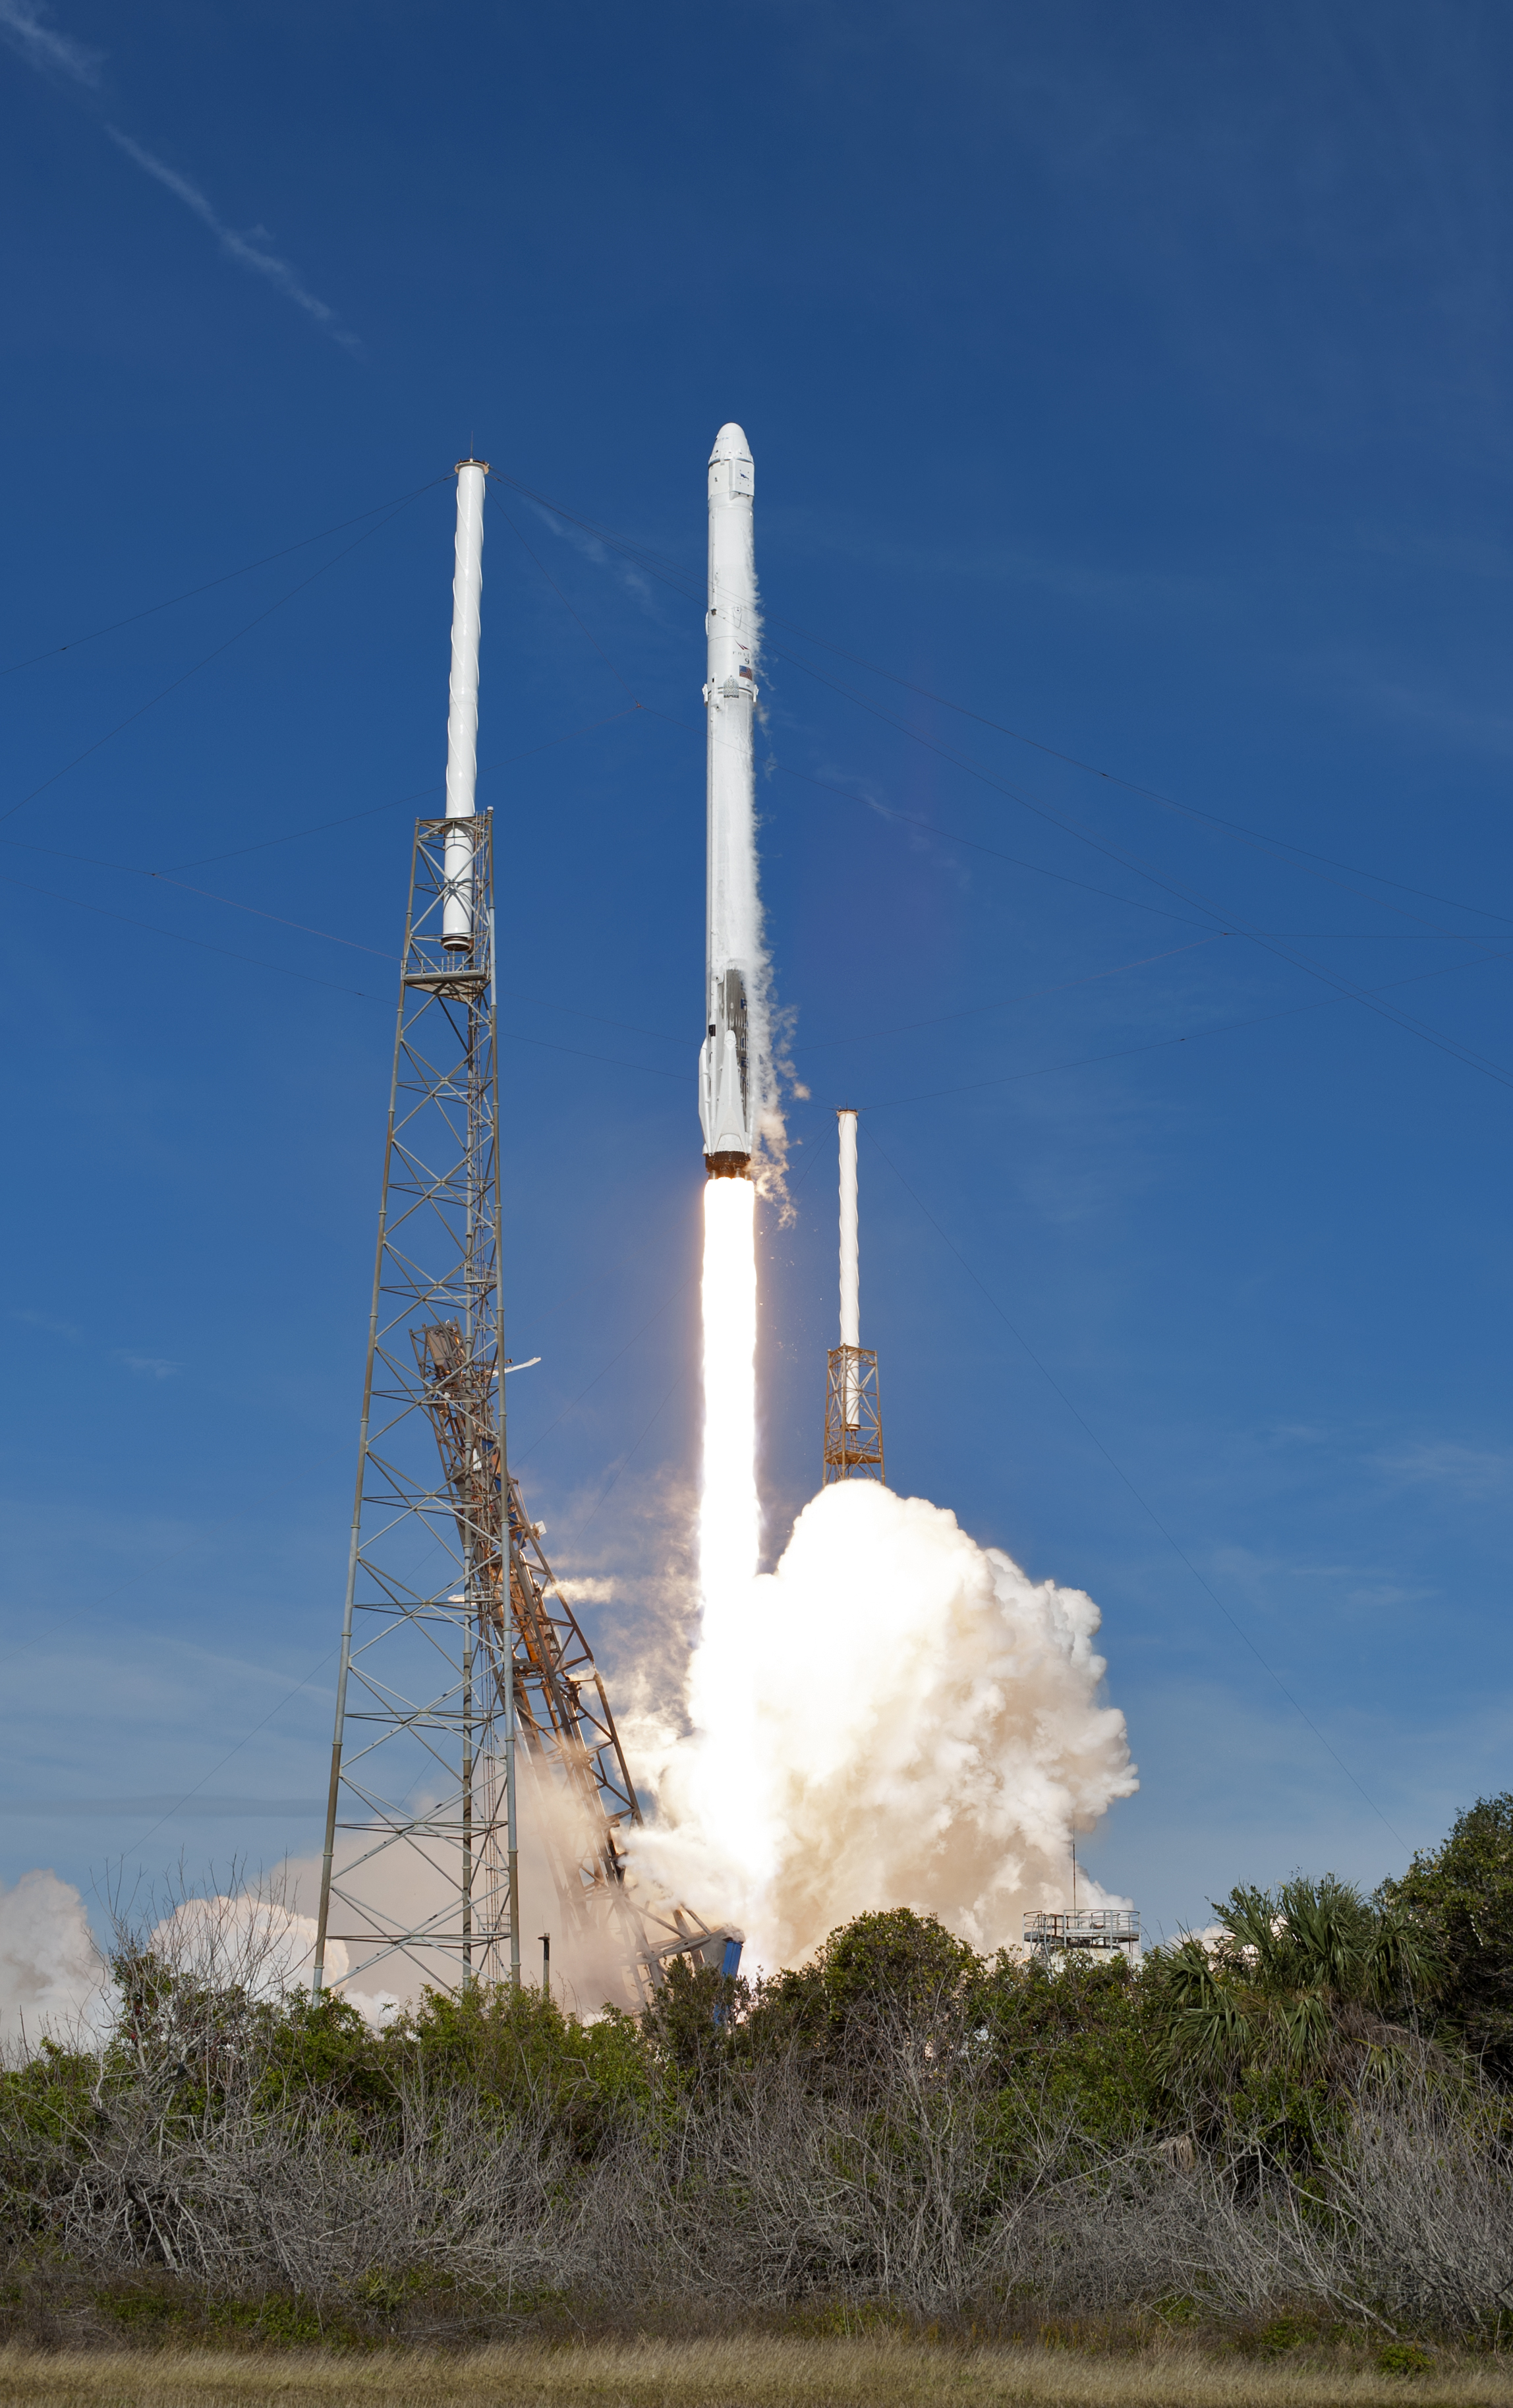 A SpaceX Falcon 9 rocket soars upward after lifting off from Space Launch Complex 40 at Cape Canaveral Air Force Station in Florida on April 2, 2018, at 4:30 p.m. EDT, carrying the SpaceX Dragon resupply spacecraft. On its 14th commercial resupply services mission for NASA, Dragon delivered supplies, equipment and new science experiments for technology research to the space station.